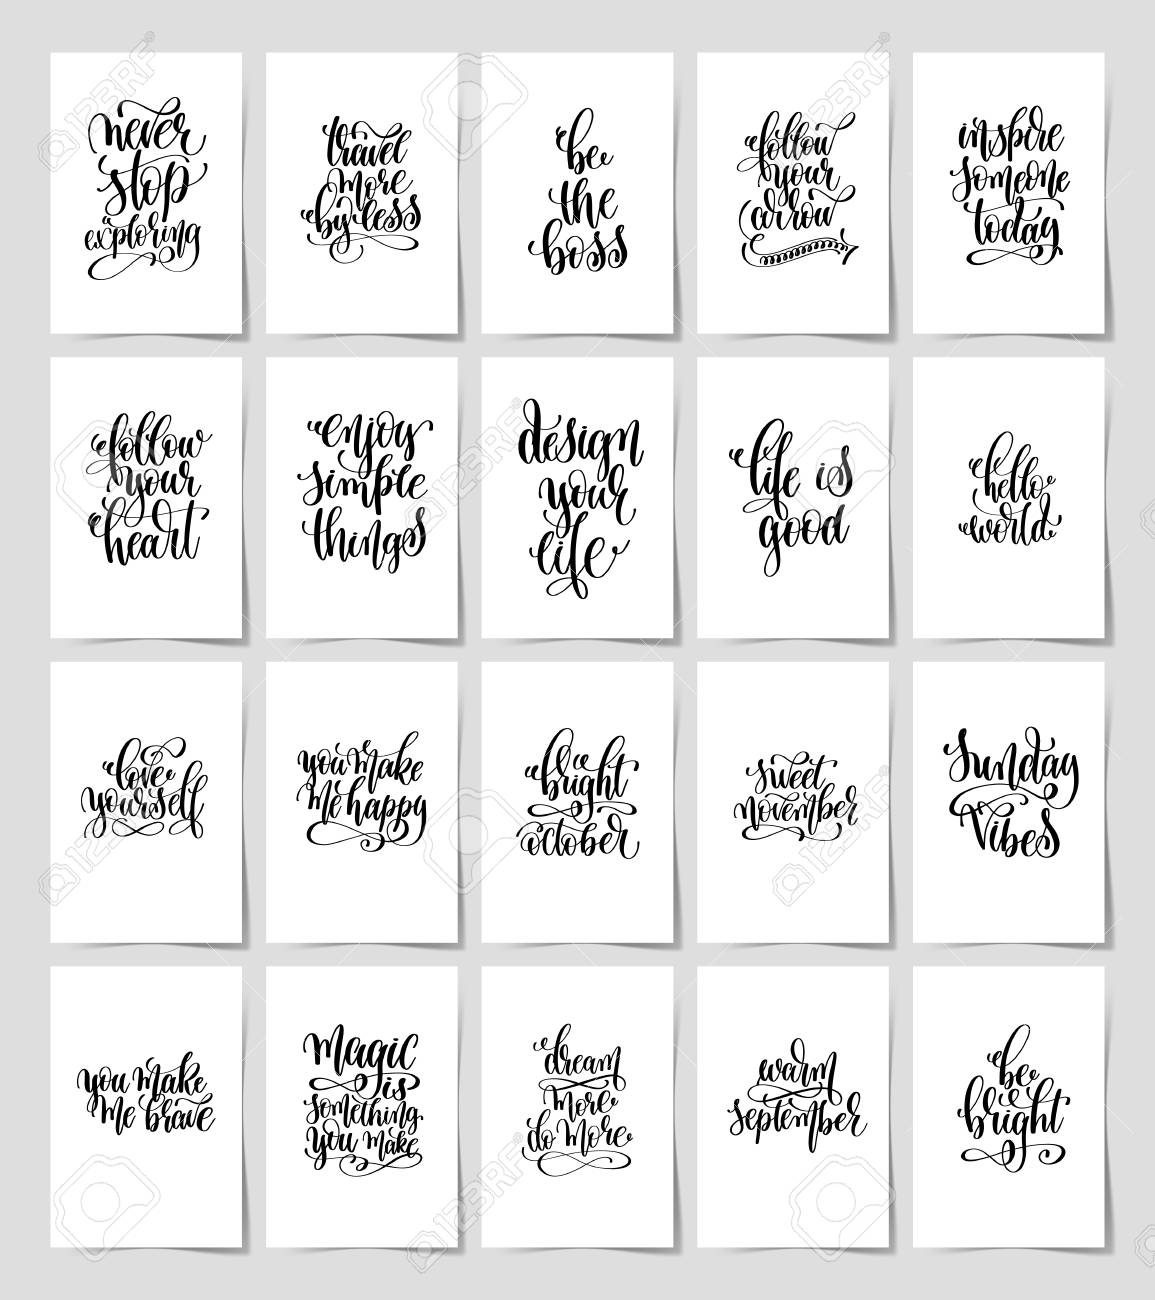 Illustration set of 20 black and white hand lettering magic quotes posters inspirational positive phrase calligraphy vector illustration collection